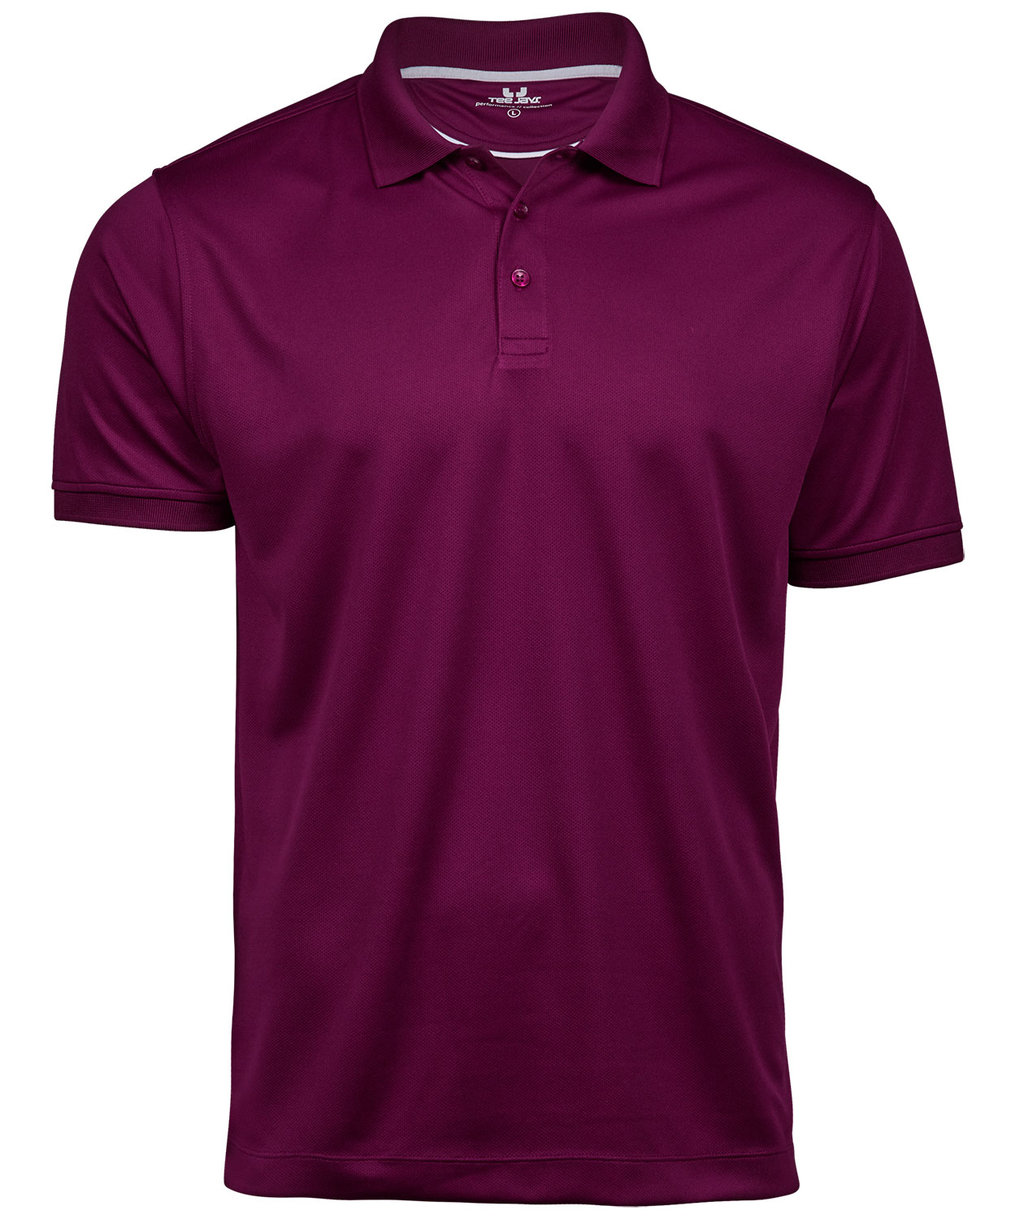 Tee Jays Performance polo T-shirt, Purple